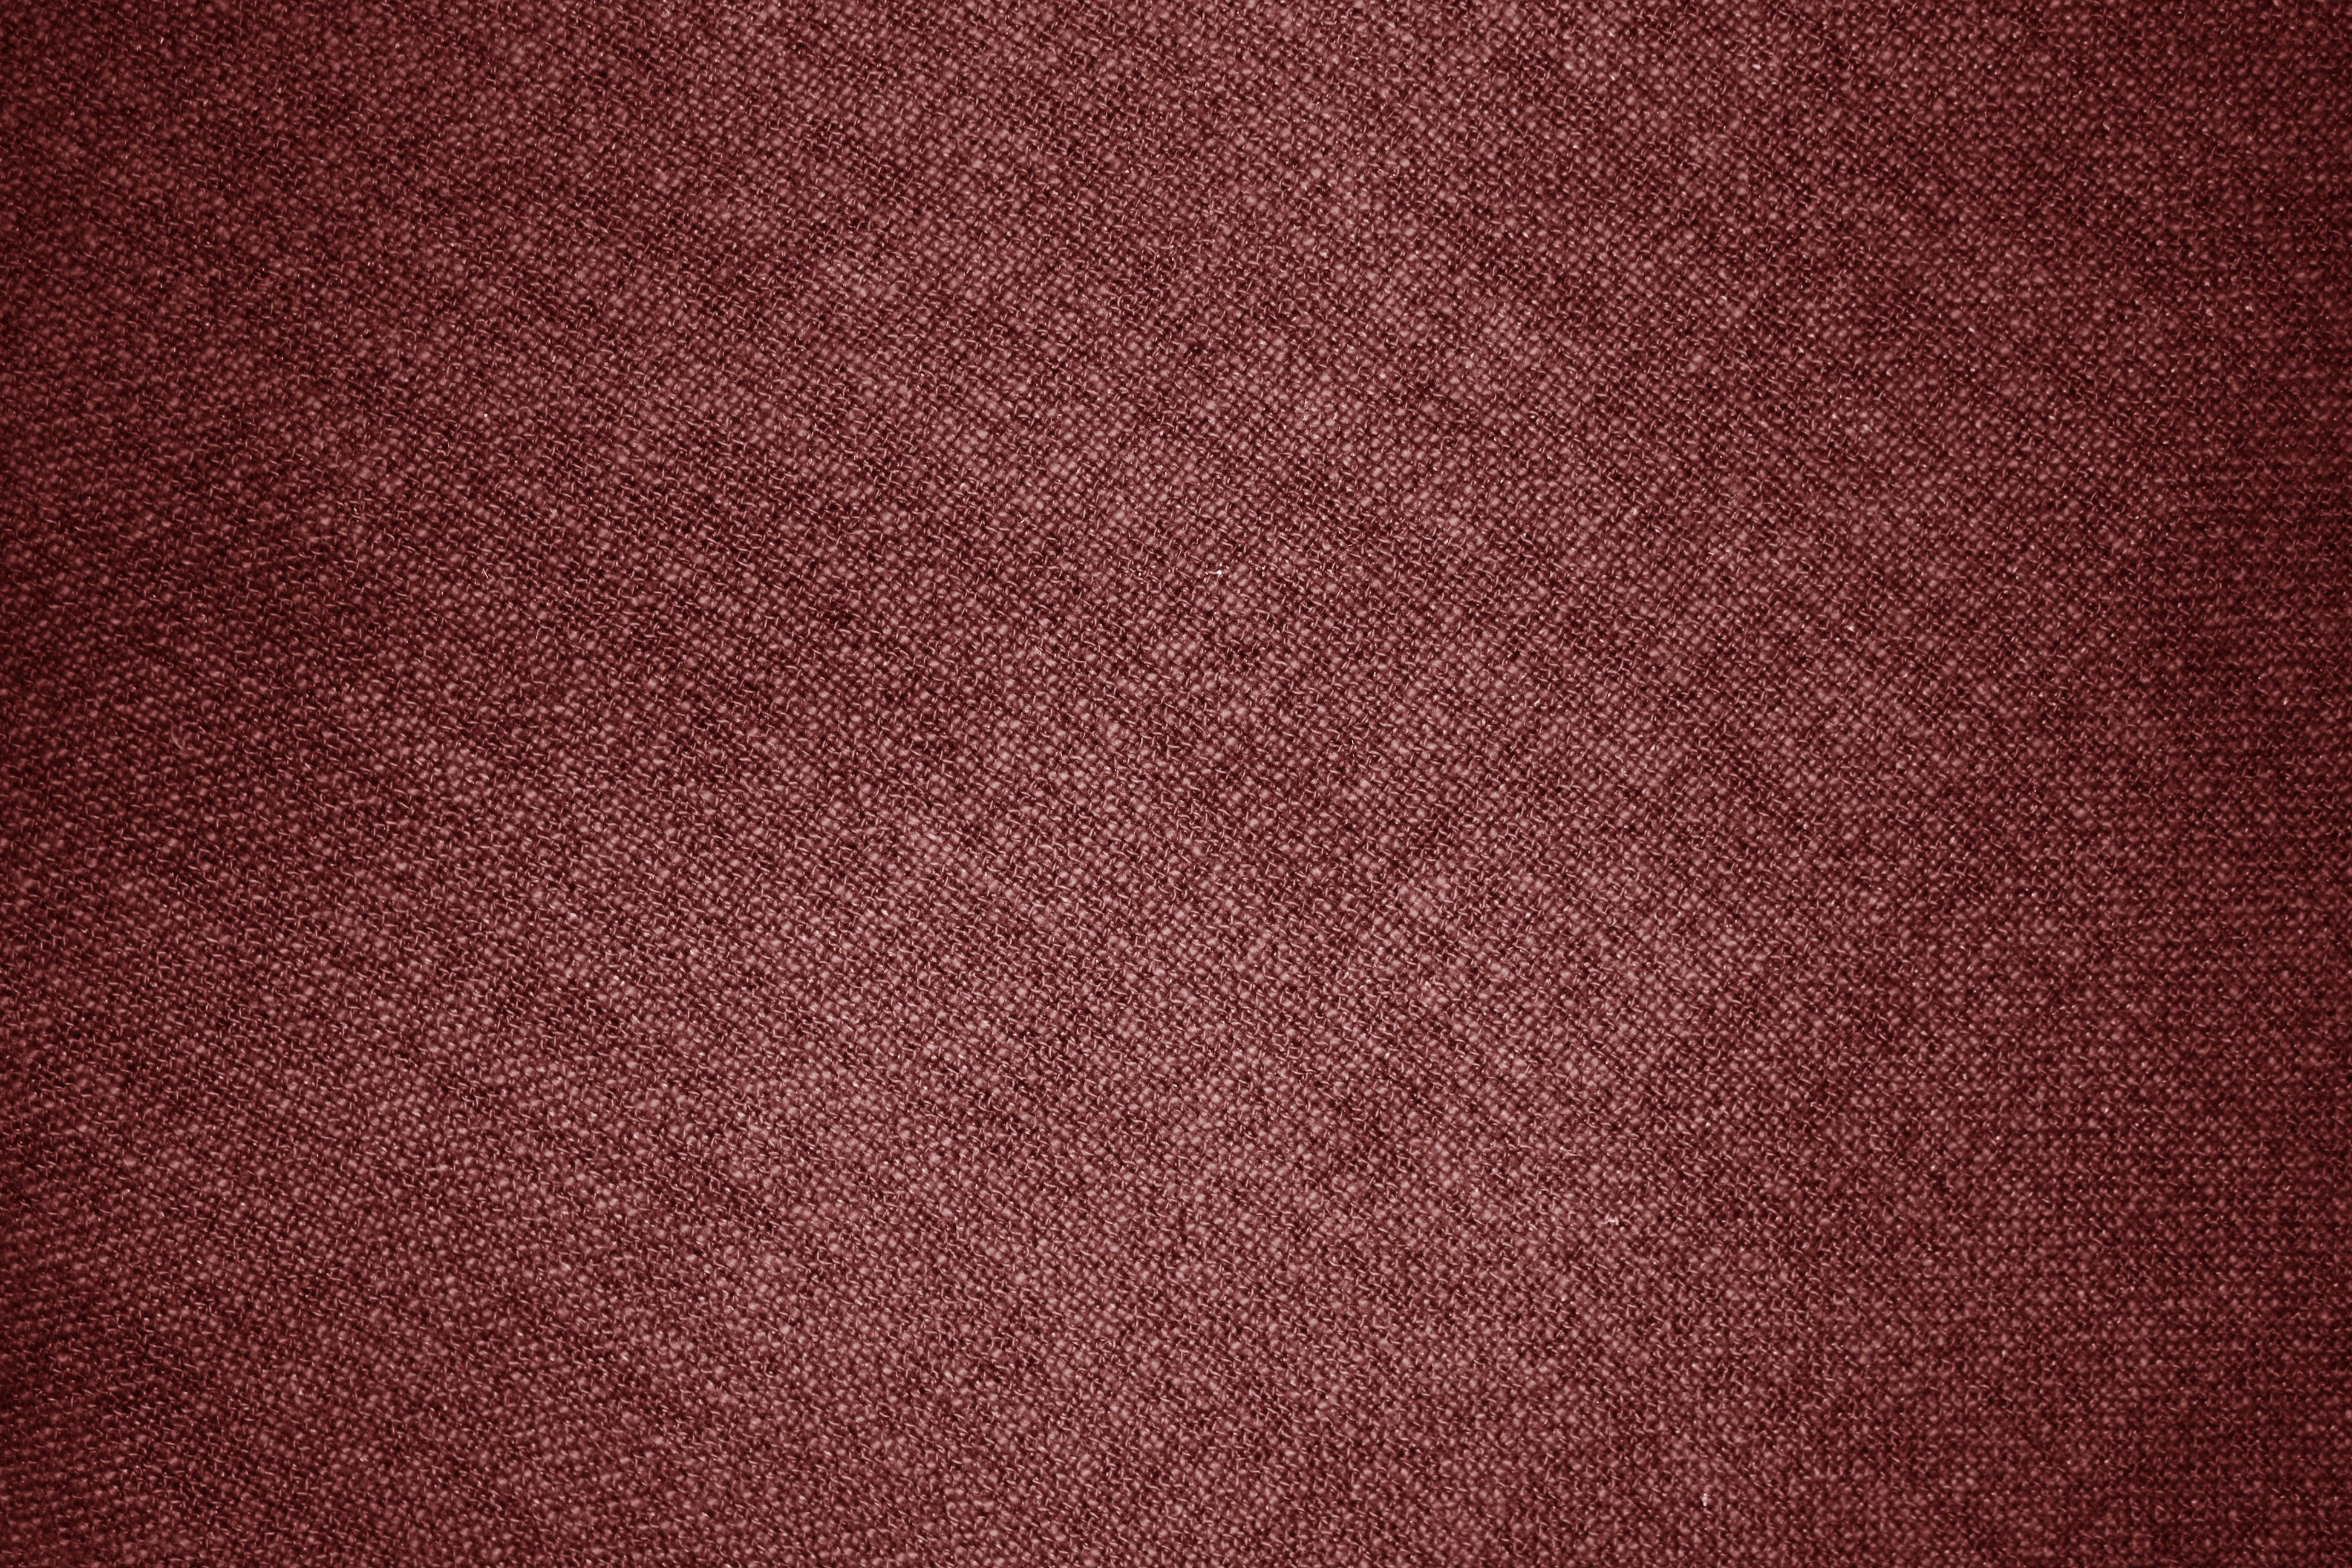 Pink fabric texture free high resolution photo dimensions 3888 - Maroon Fabric Texture